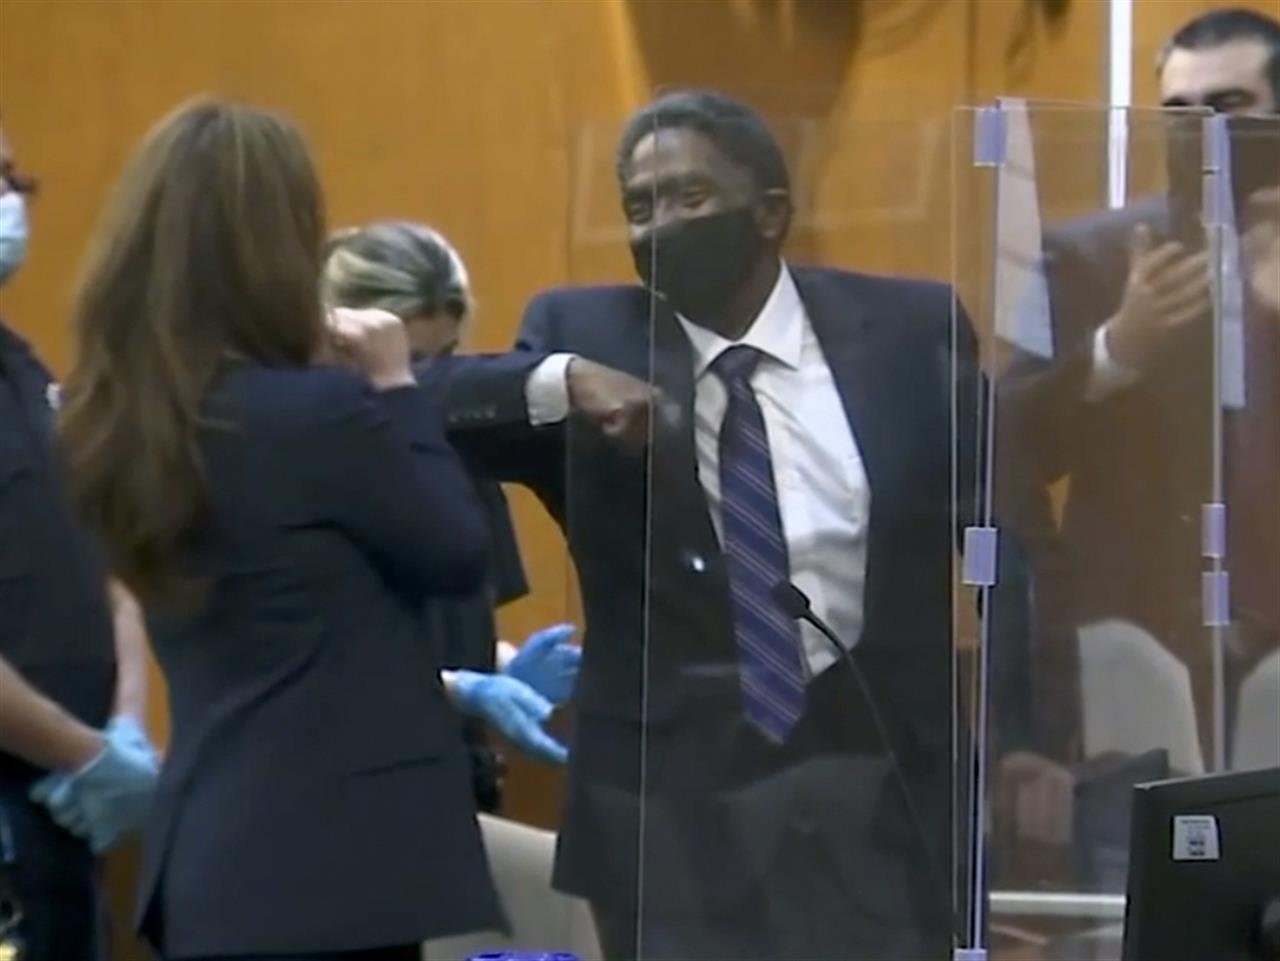 In this image made from video provided by WABC TV, Jaythan Kendrick, center, celebrates in a New York City courtroom, Thursday, Nov. 19, 2020, after being cleared of the November 1994 killing of Josephine Sanchez. After more than a quarter-century behind bars for the deadly purse-snatching, the New York man has been cleared as prosecutors acknowledged that witnesses against him, including a 10-year-old boy, weren't reliable. (WABC TV via AP)